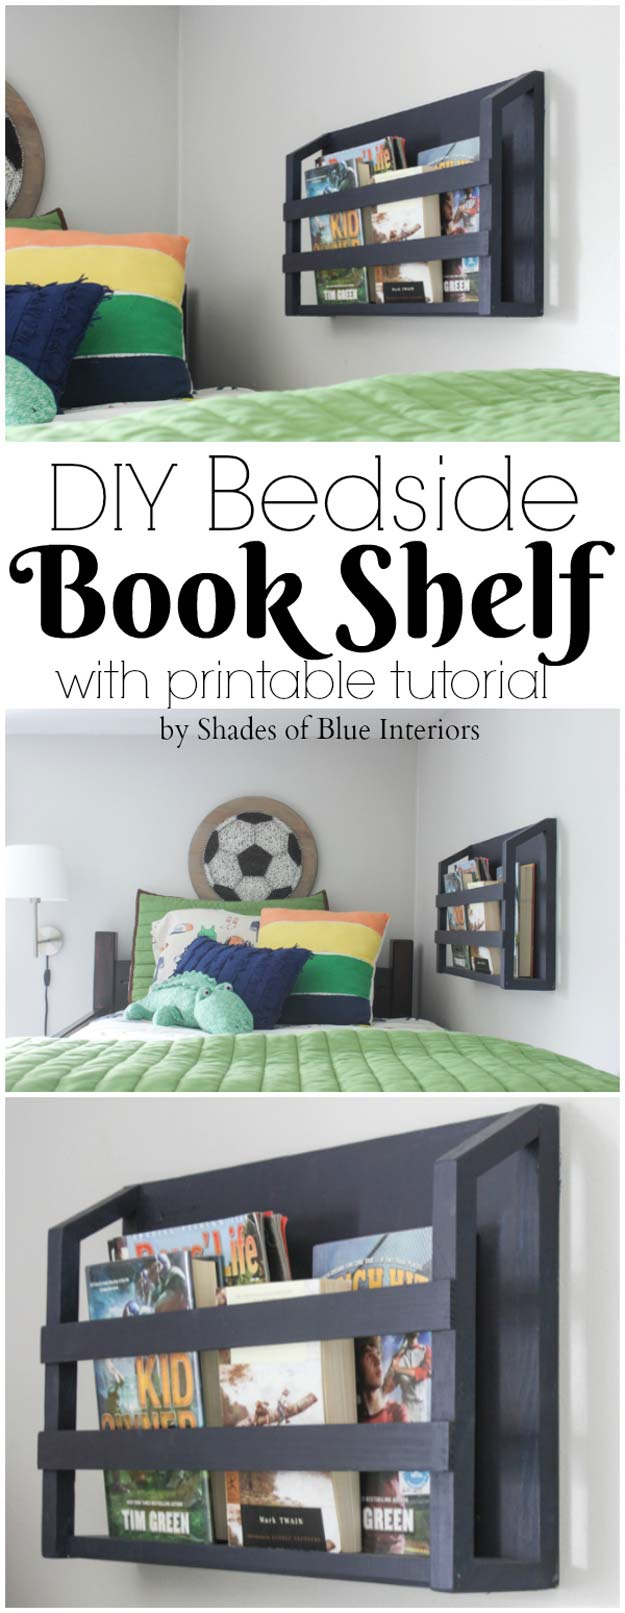 DIY Room Decor Ideas For Boys     DIY Bedside Book Shelf   Teen Bedroom  Decor